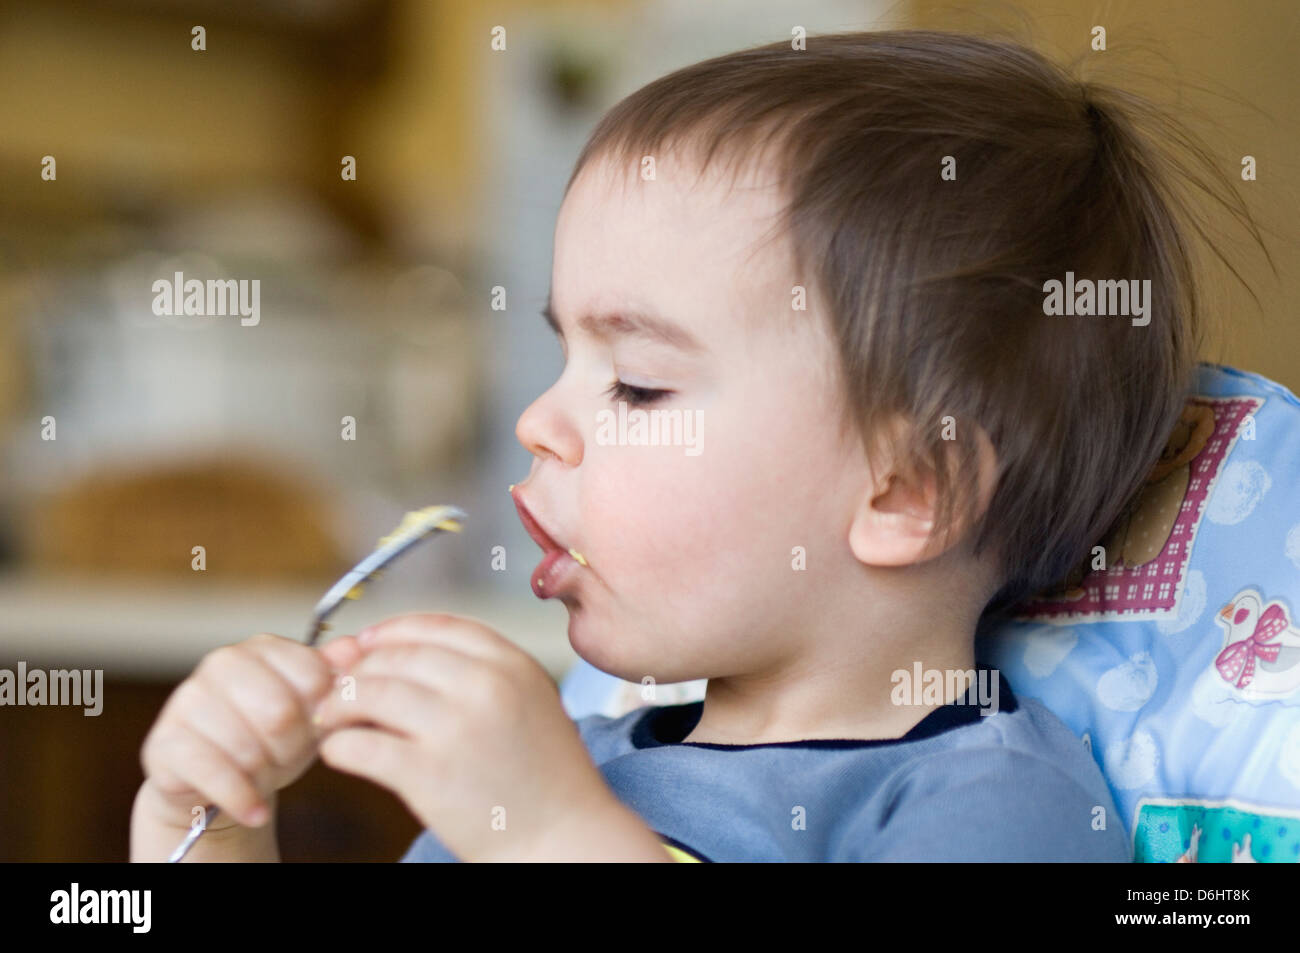 Twenty Two Month Old Boy Eating Scrambled Eggs with a Fork - Stock Image